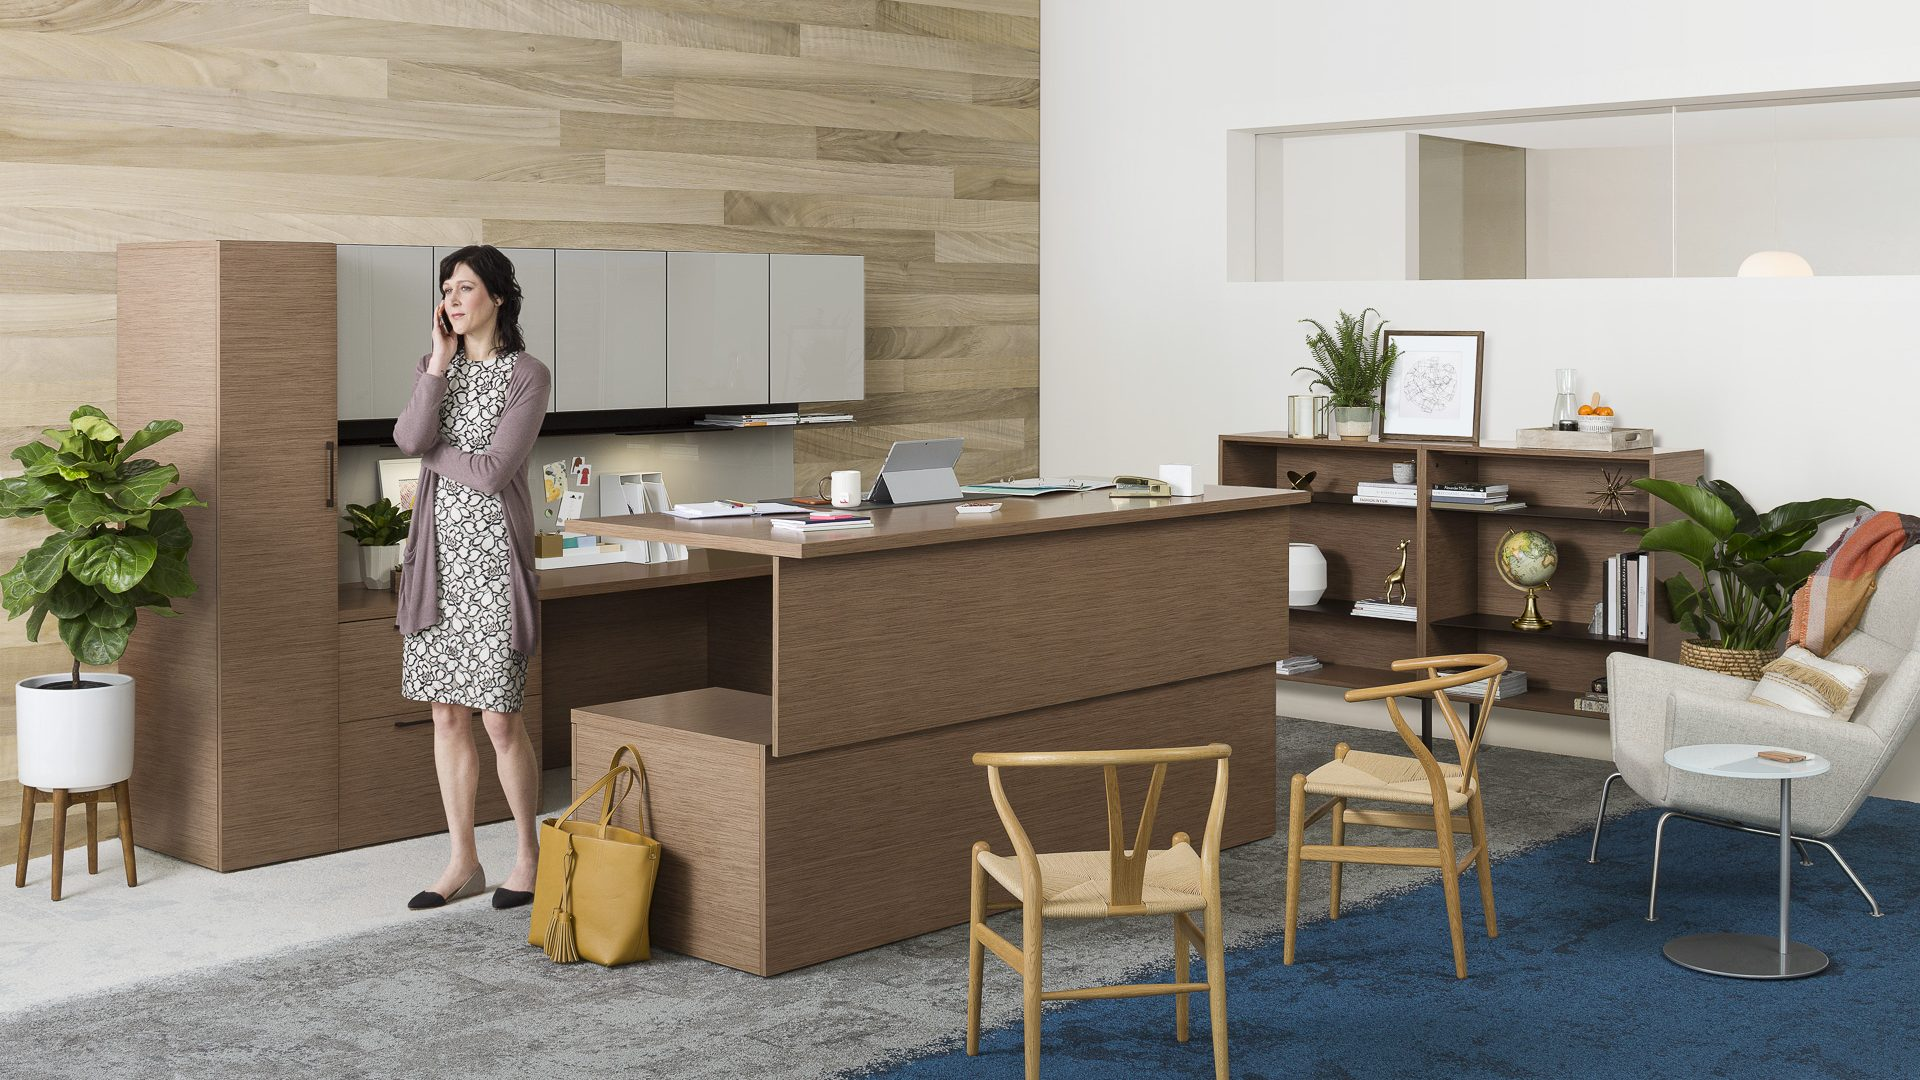 Custer designs and builds commercial and corporate workspaces that connect people and empower them to do their best work. Start planning your new design today!